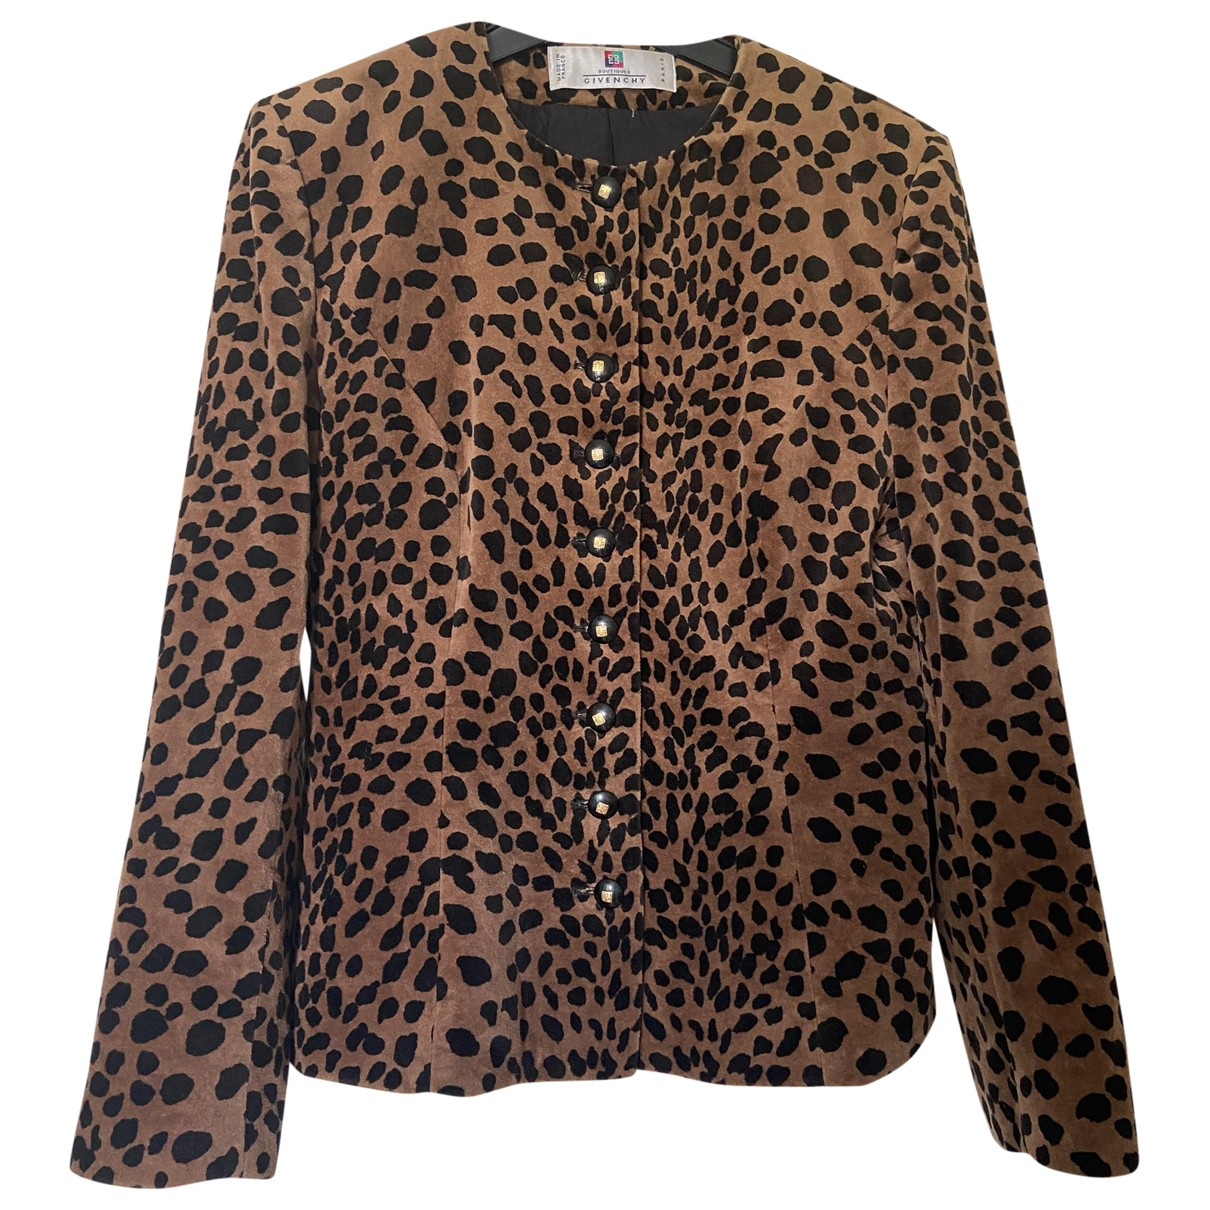 Givenchy \N Brown Cotton jacket for Women M International